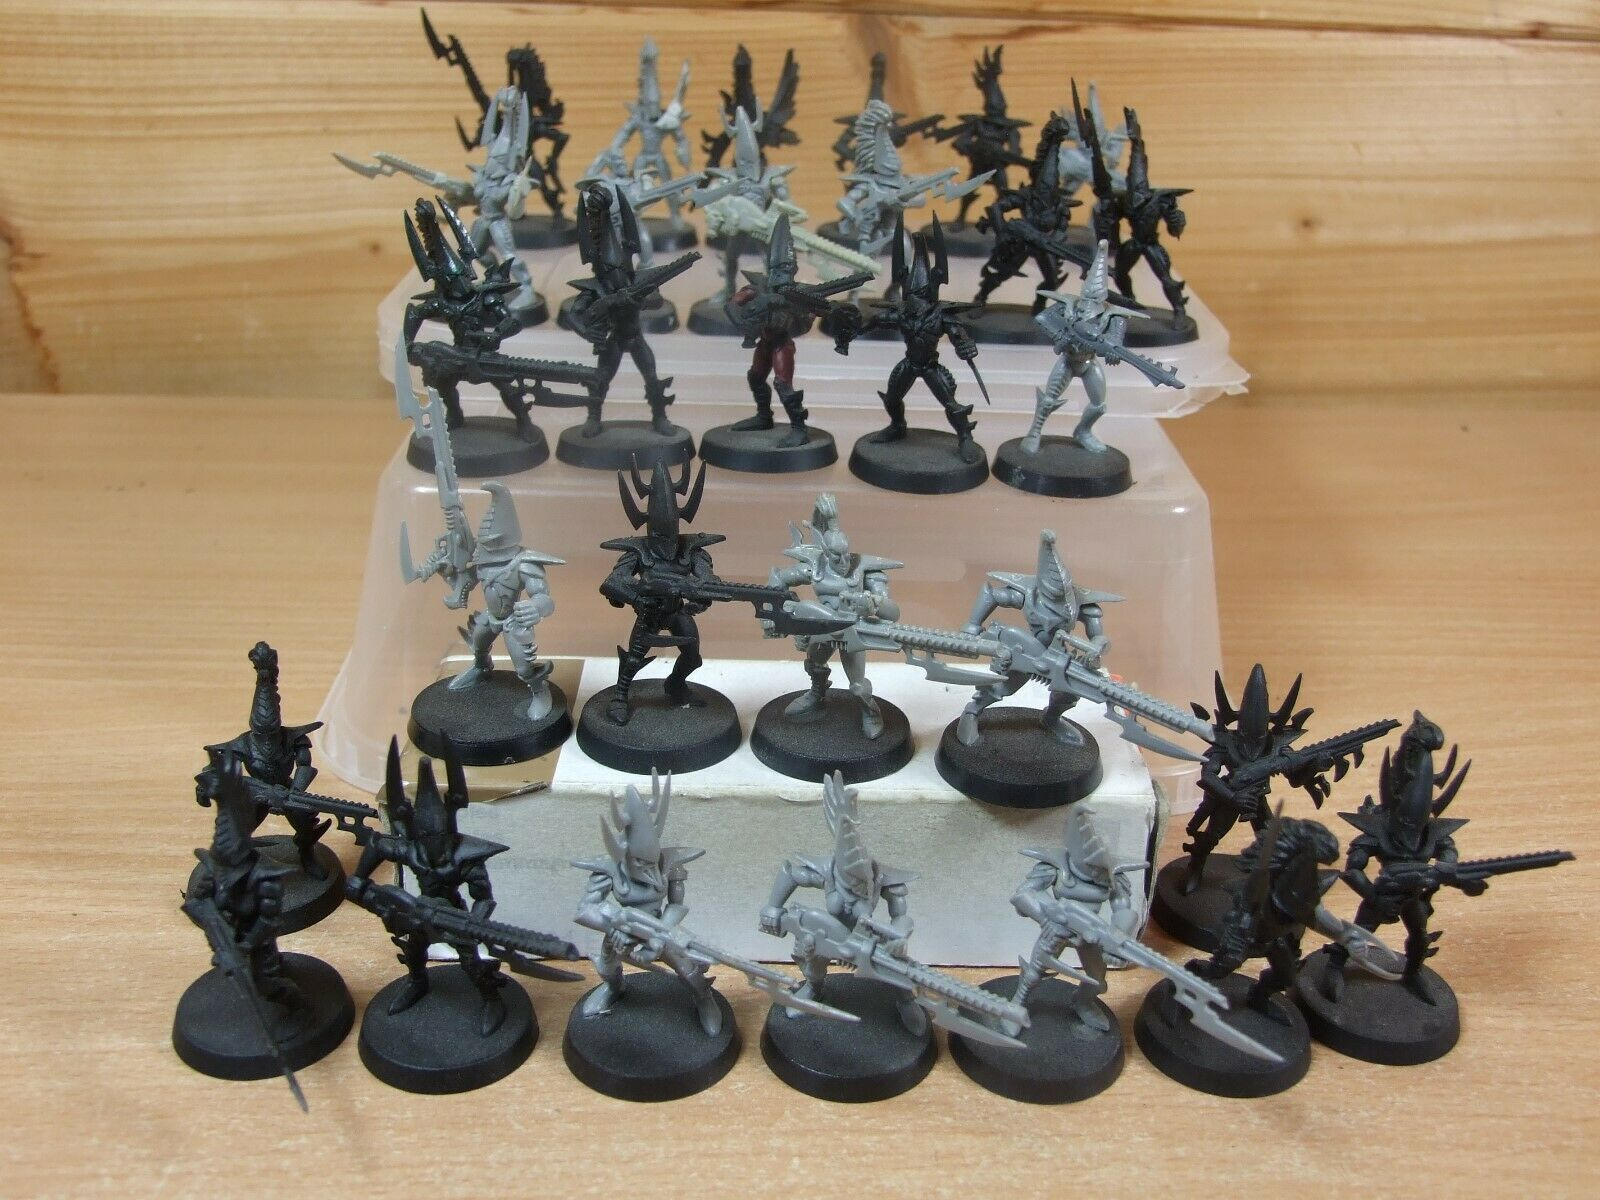 30 PLASTIC WARHAMMER DARK ELDAR WARRIORS PART PAINTED (1198) (1198) (1198) c659e6